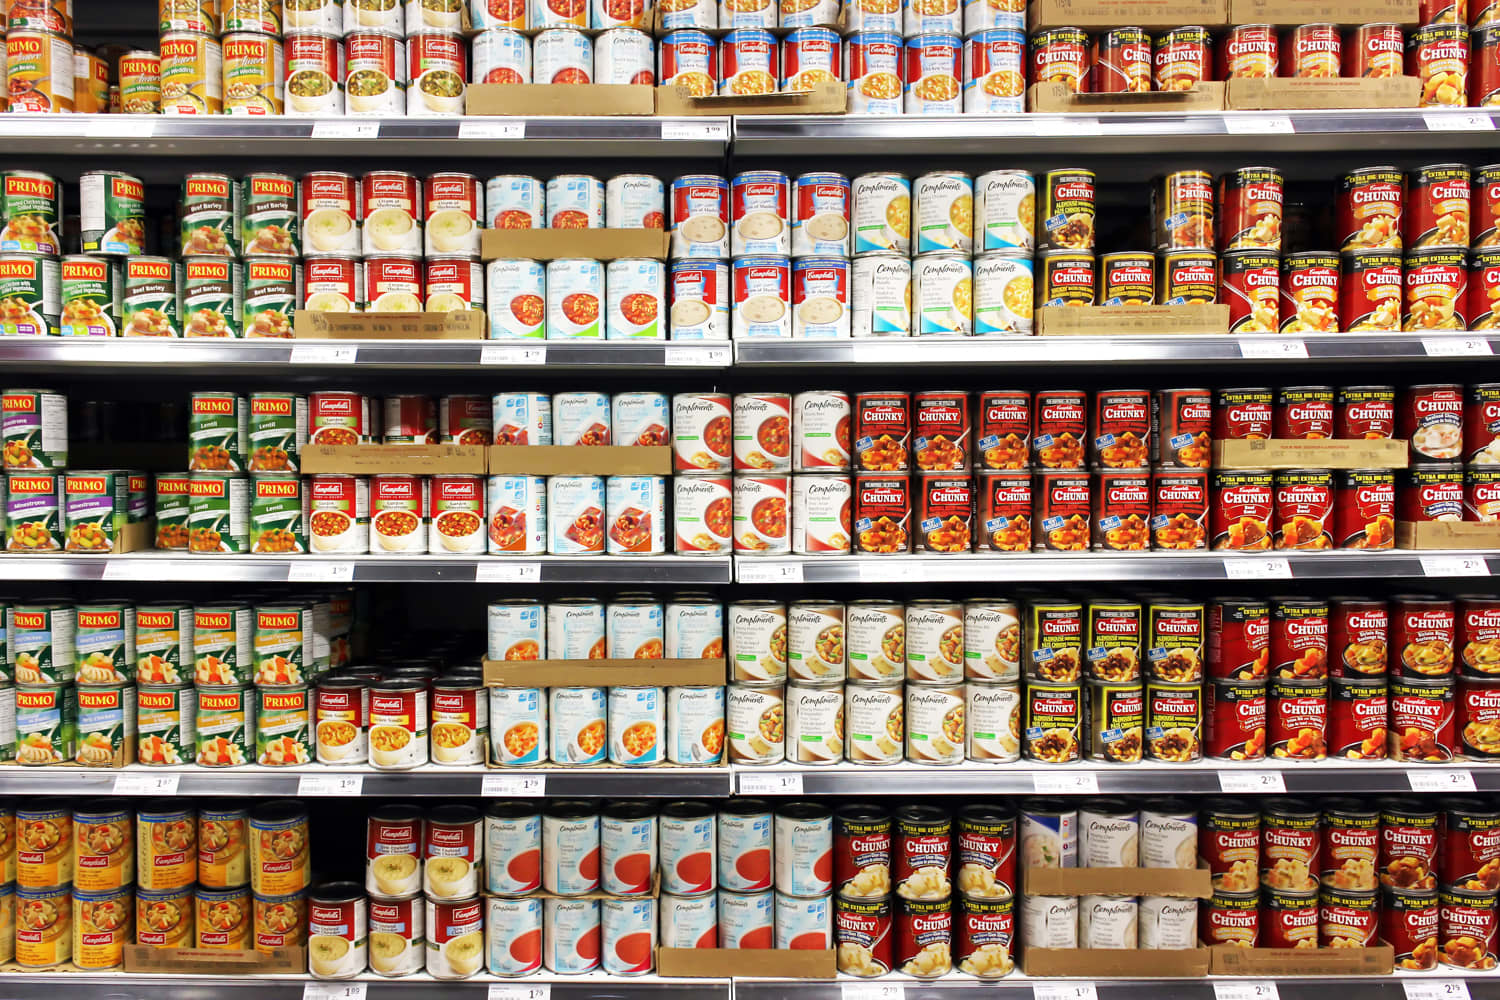 The 10 Best Canned Goods to Buy, According to a Nutritionist